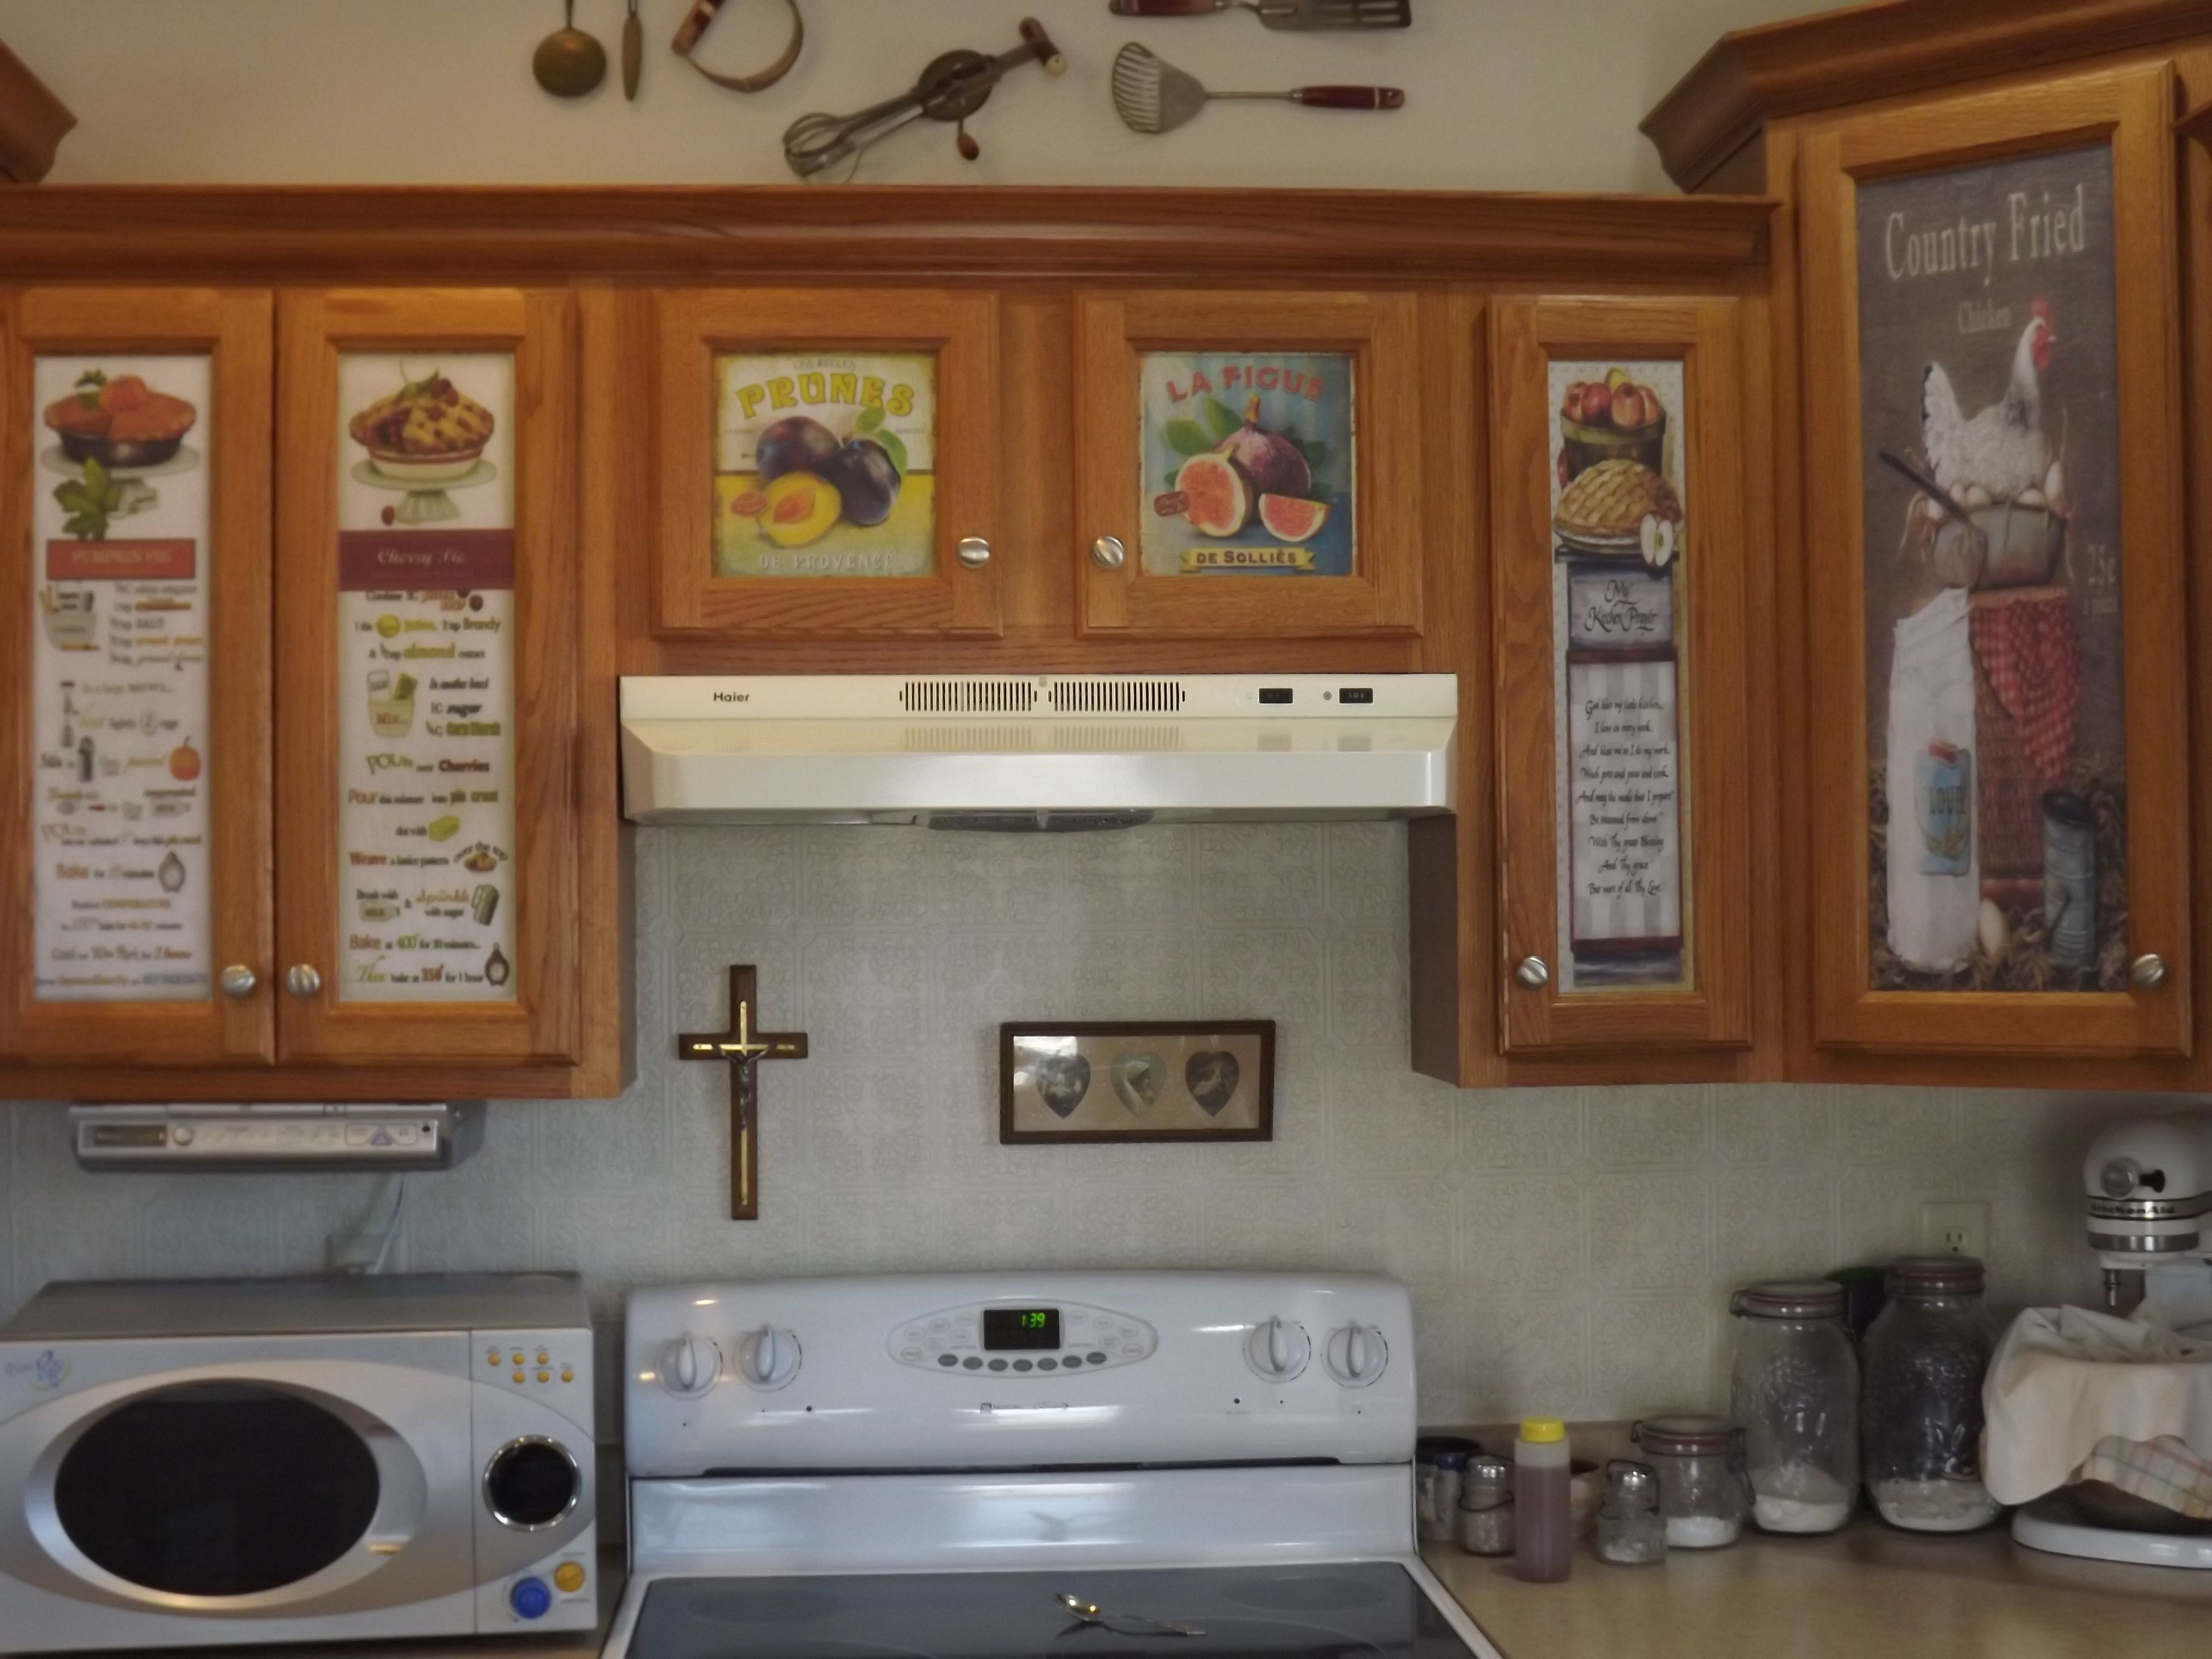 Decoupage On Kitchen Cubboards With Vintage Labels Home Interior Design House Interior Kitchen